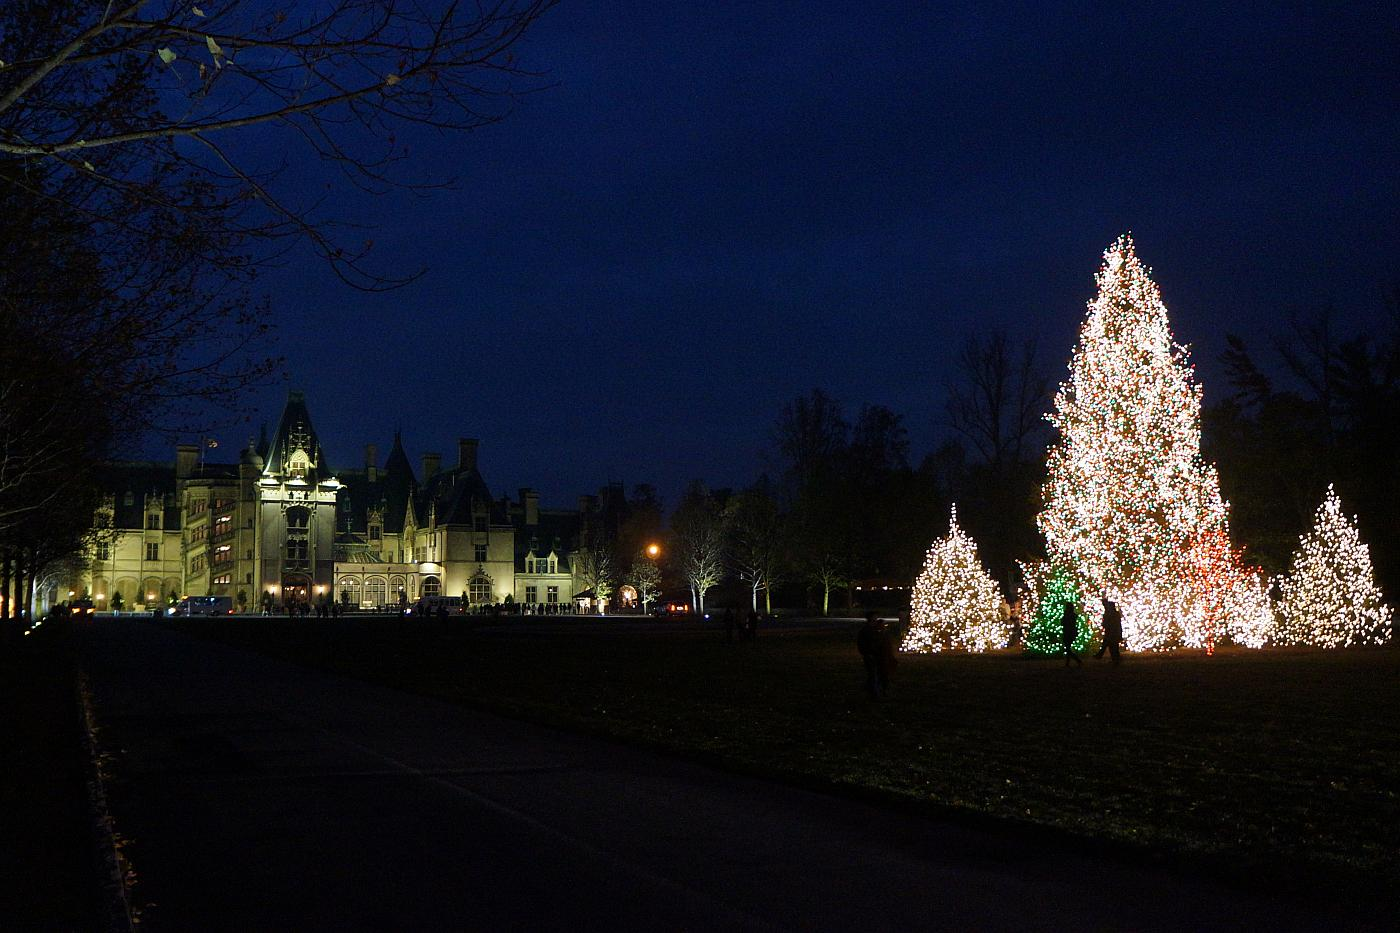 Biltmore House With Christmas Trees [view] [download]